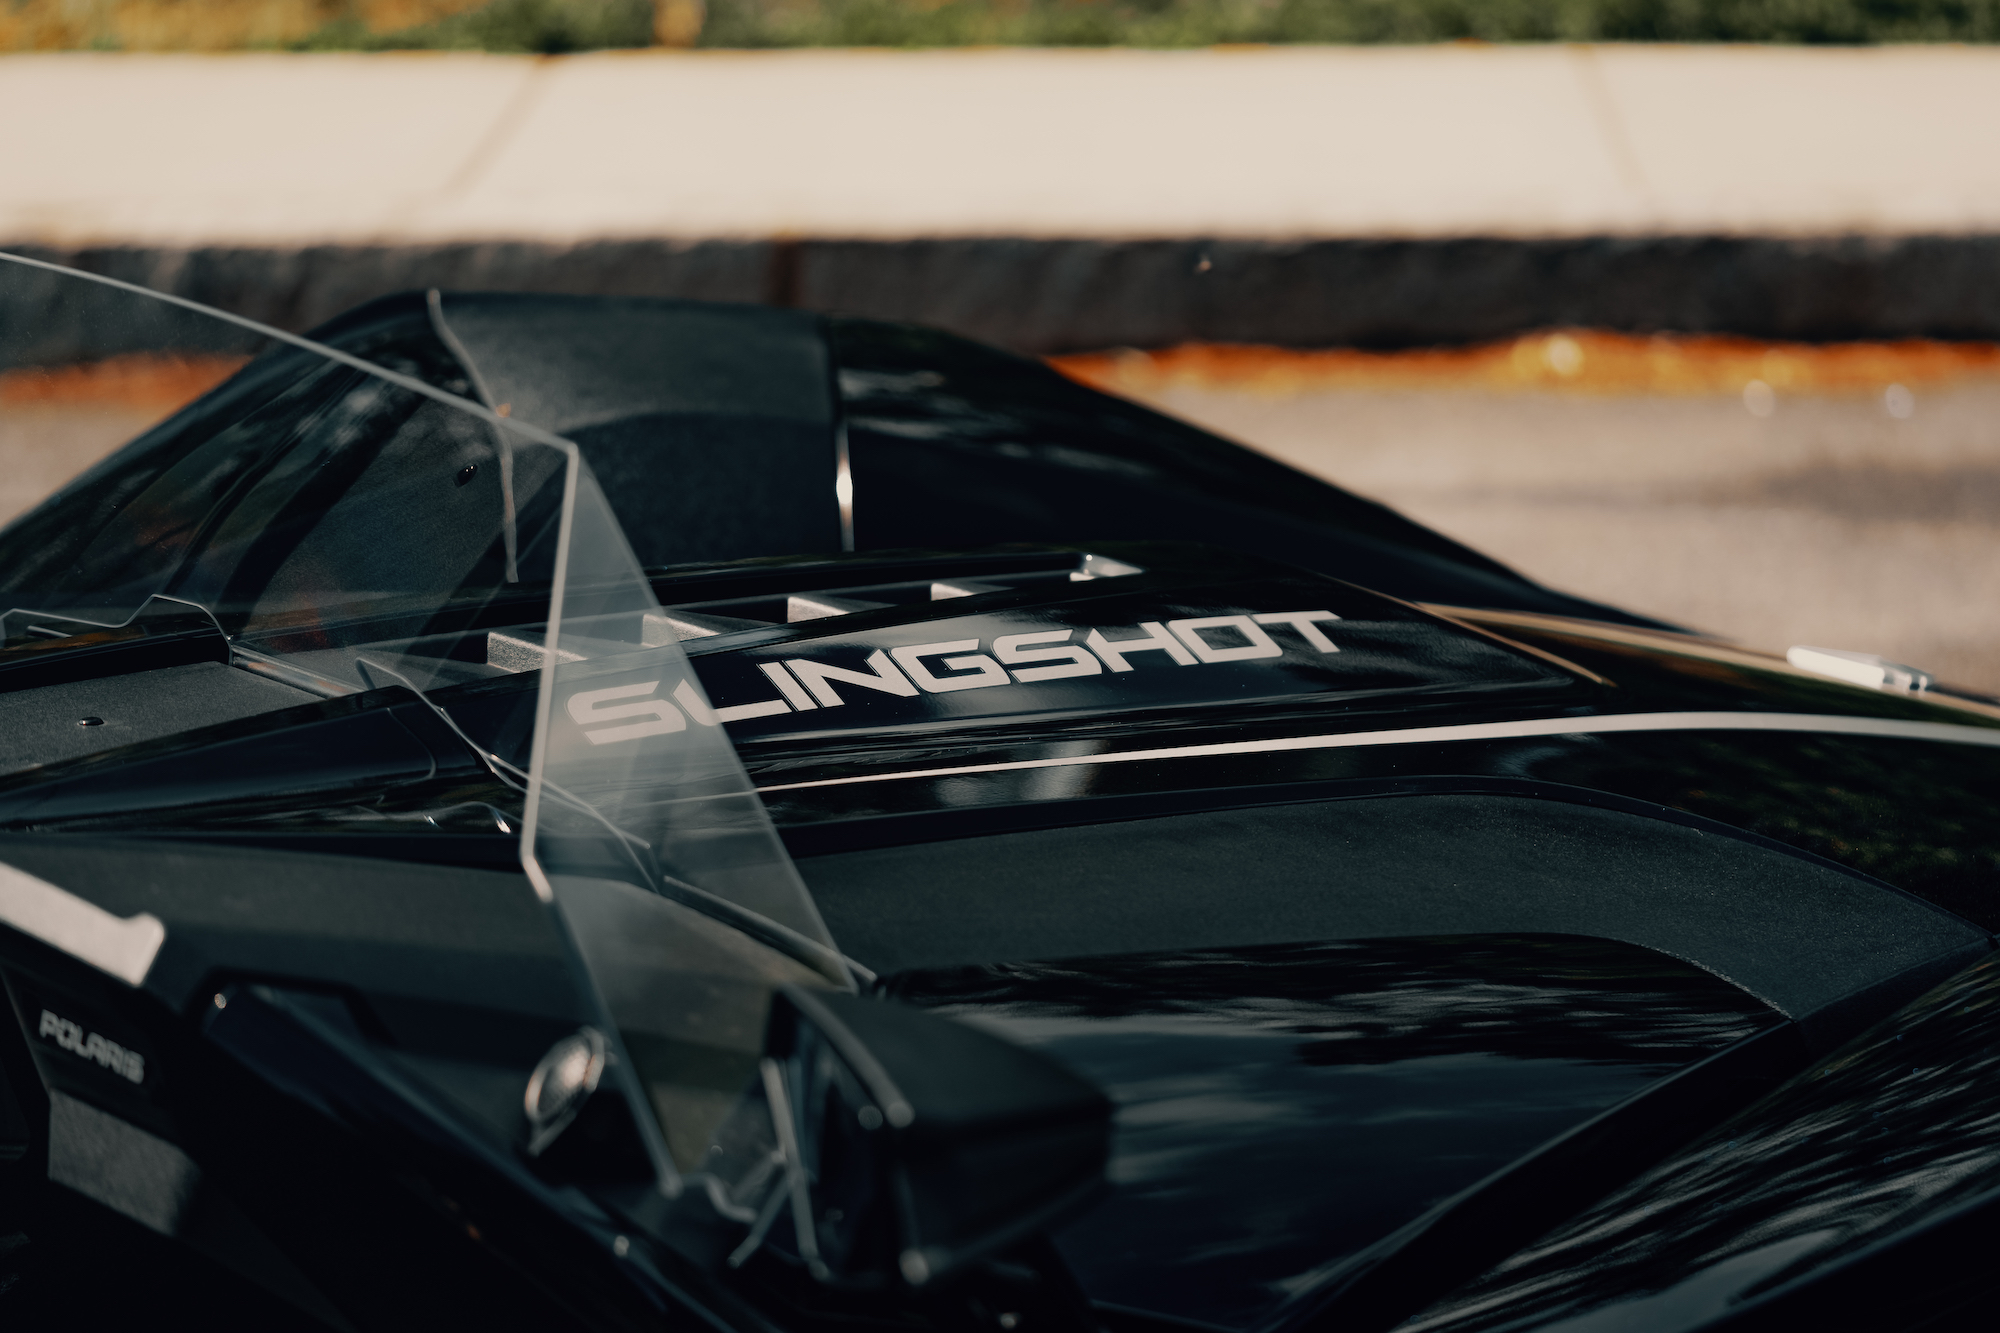 hood of the Polaris Slingshot - Polaris Slingshots are available as rentals at the Mountain Mile Mall at Mountain Mile Adventures in Pigeon Forge, Tennessee